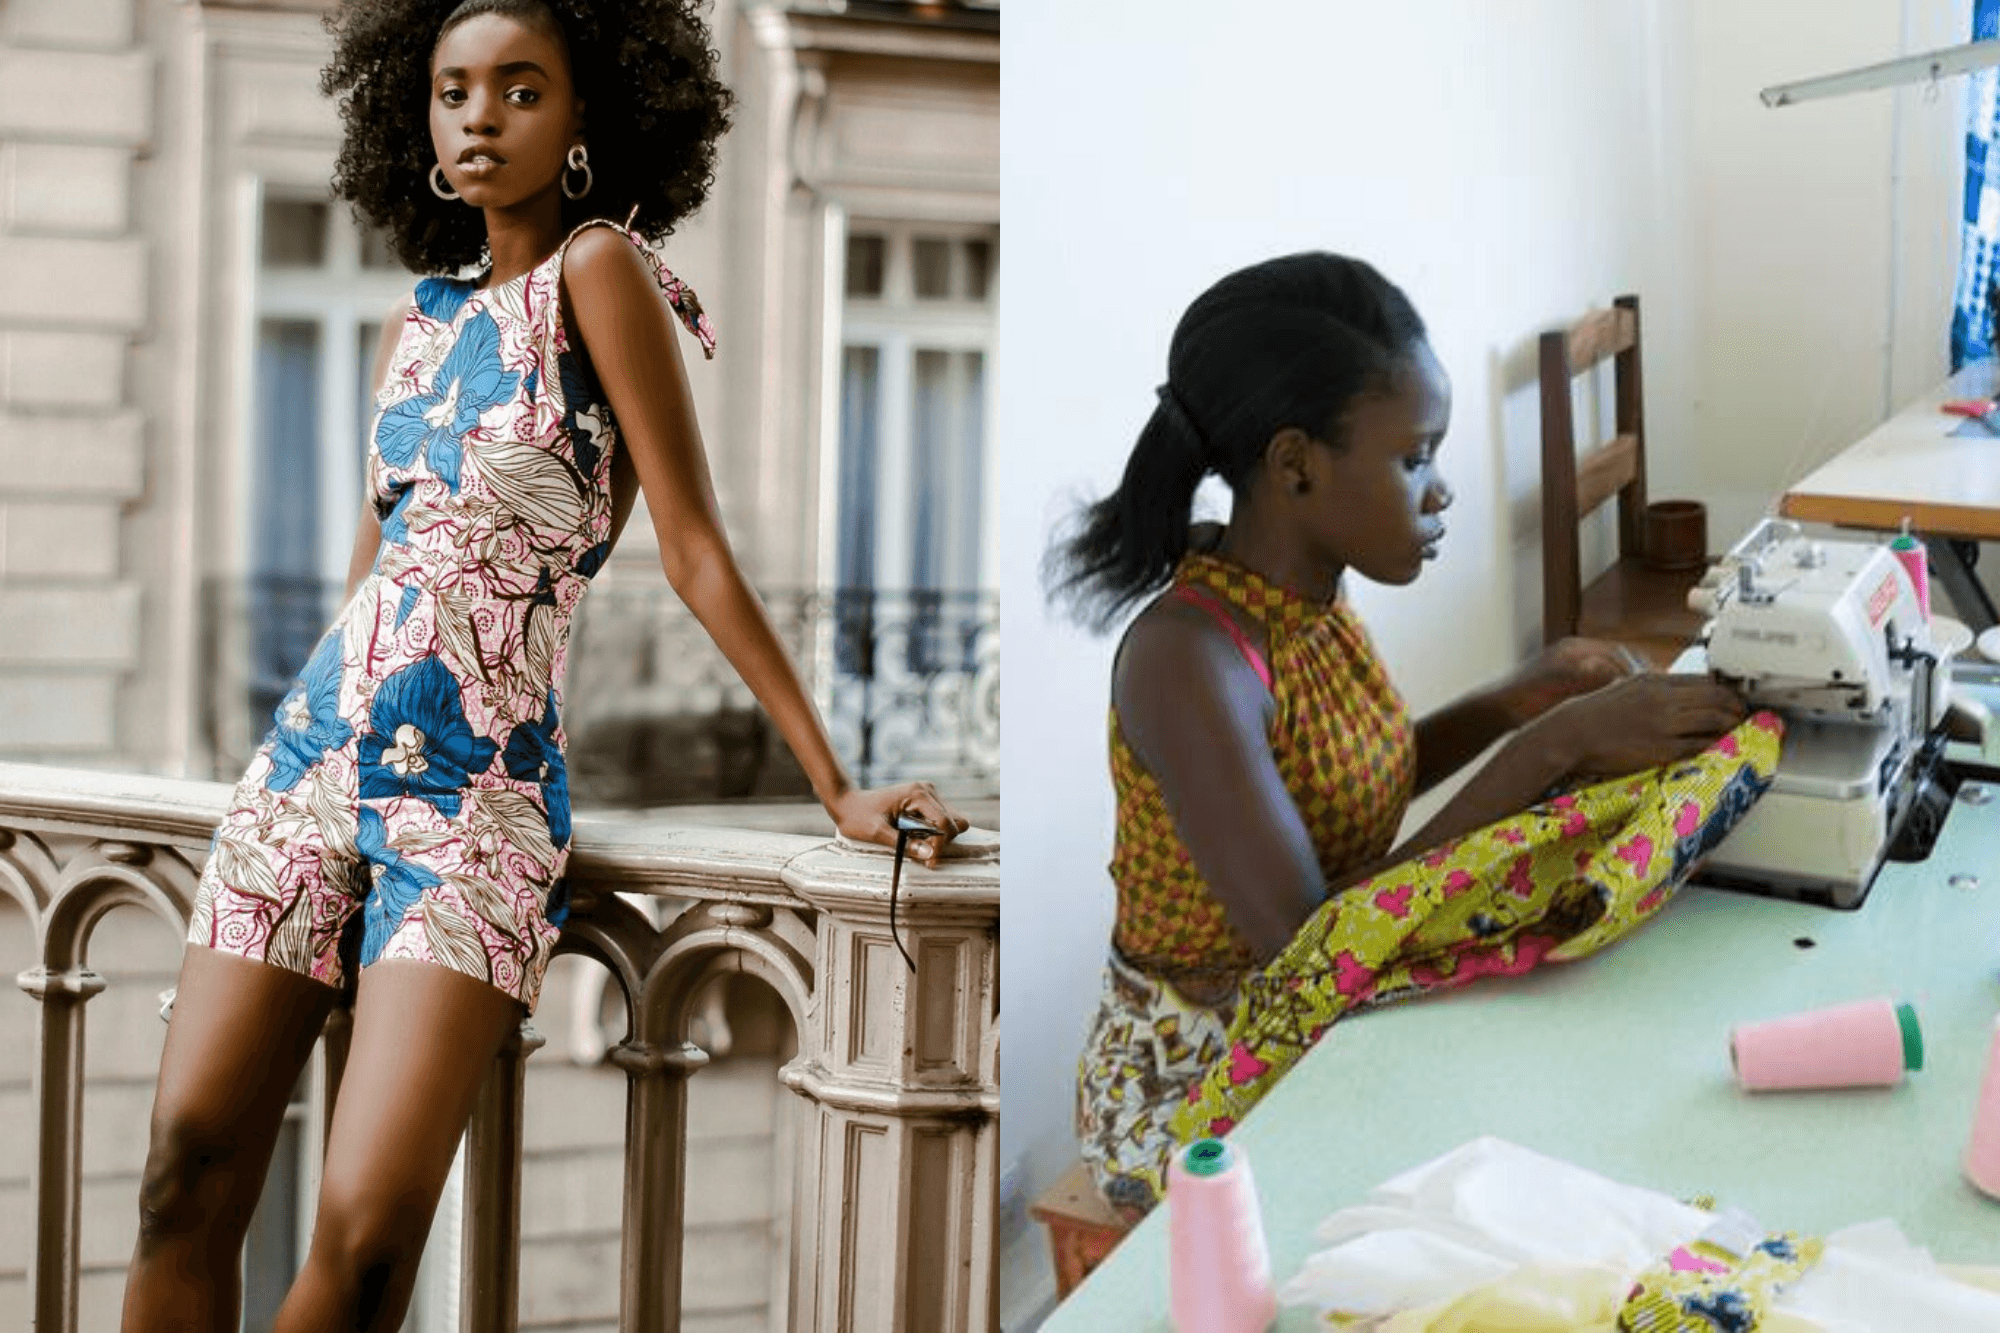 Why is ethical fashion important?